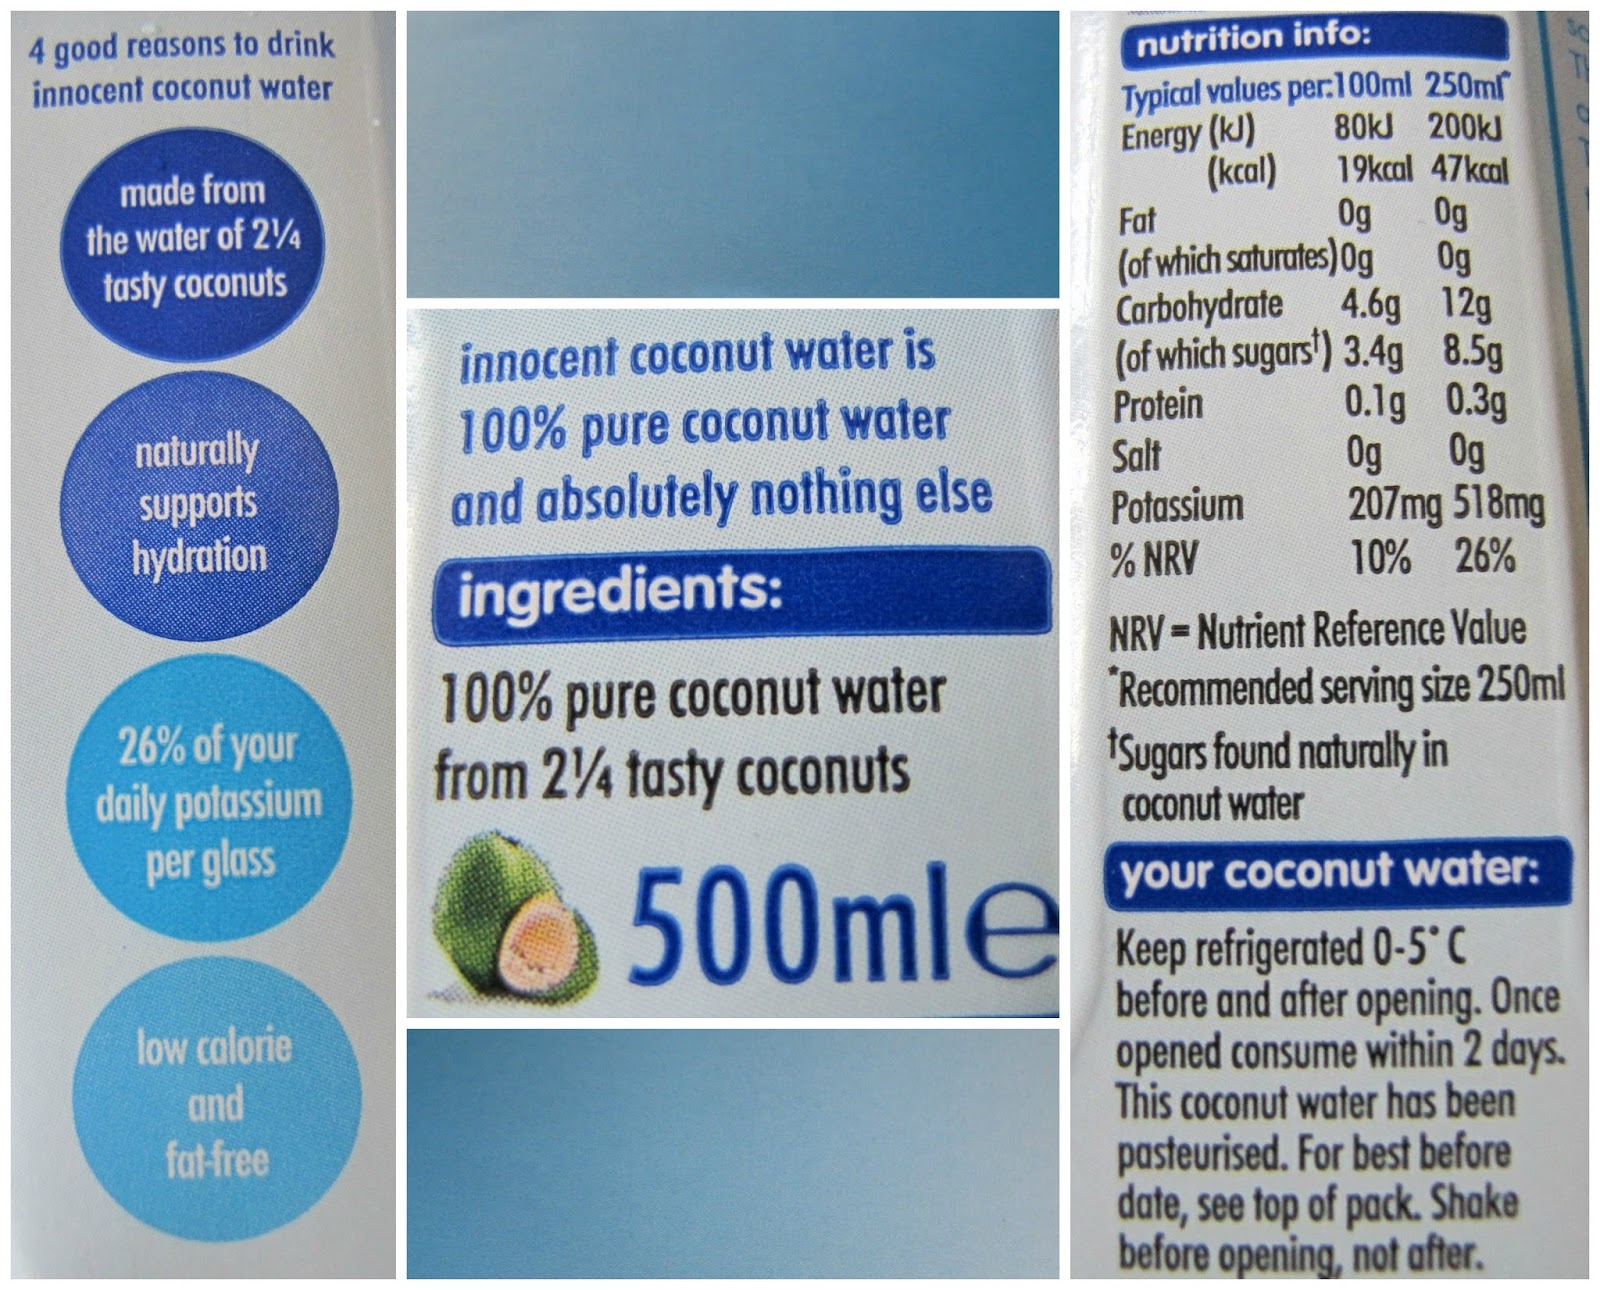 Innocent Coconut Water Is Made From A Blend Of Specially Selected Varieties And Thats It No Extra Additives Concentrates Or Added